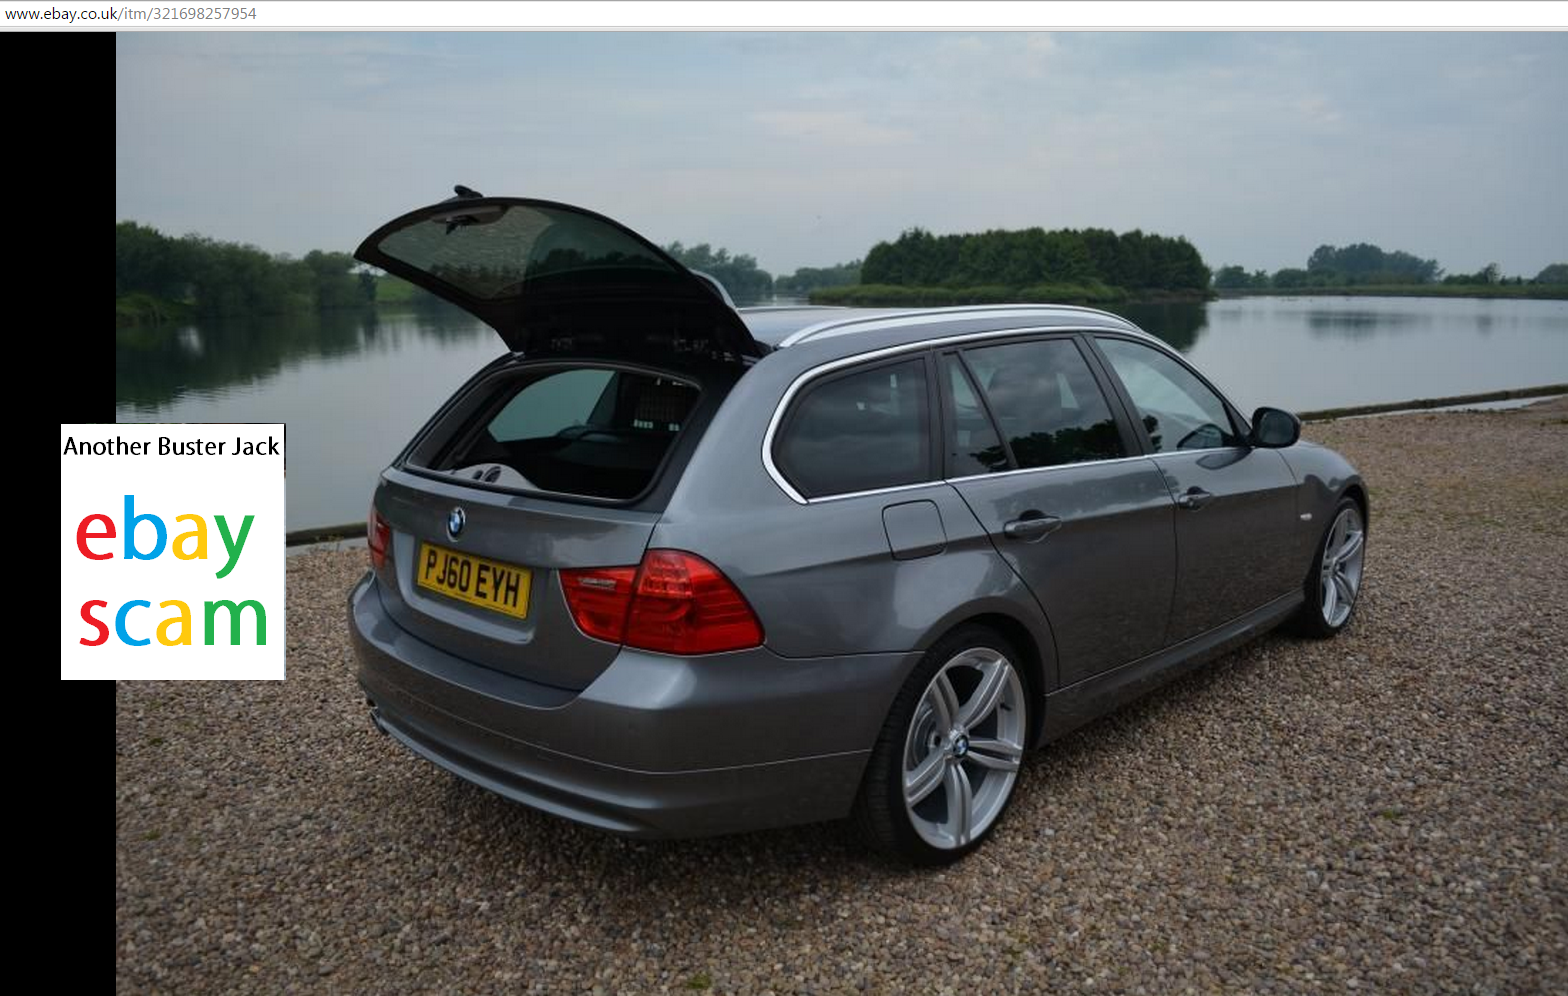 ebay scam 2010 bmw 318d sport touring pj60eyh fraud pj60 eyh 18 mar 15. Black Bedroom Furniture Sets. Home Design Ideas